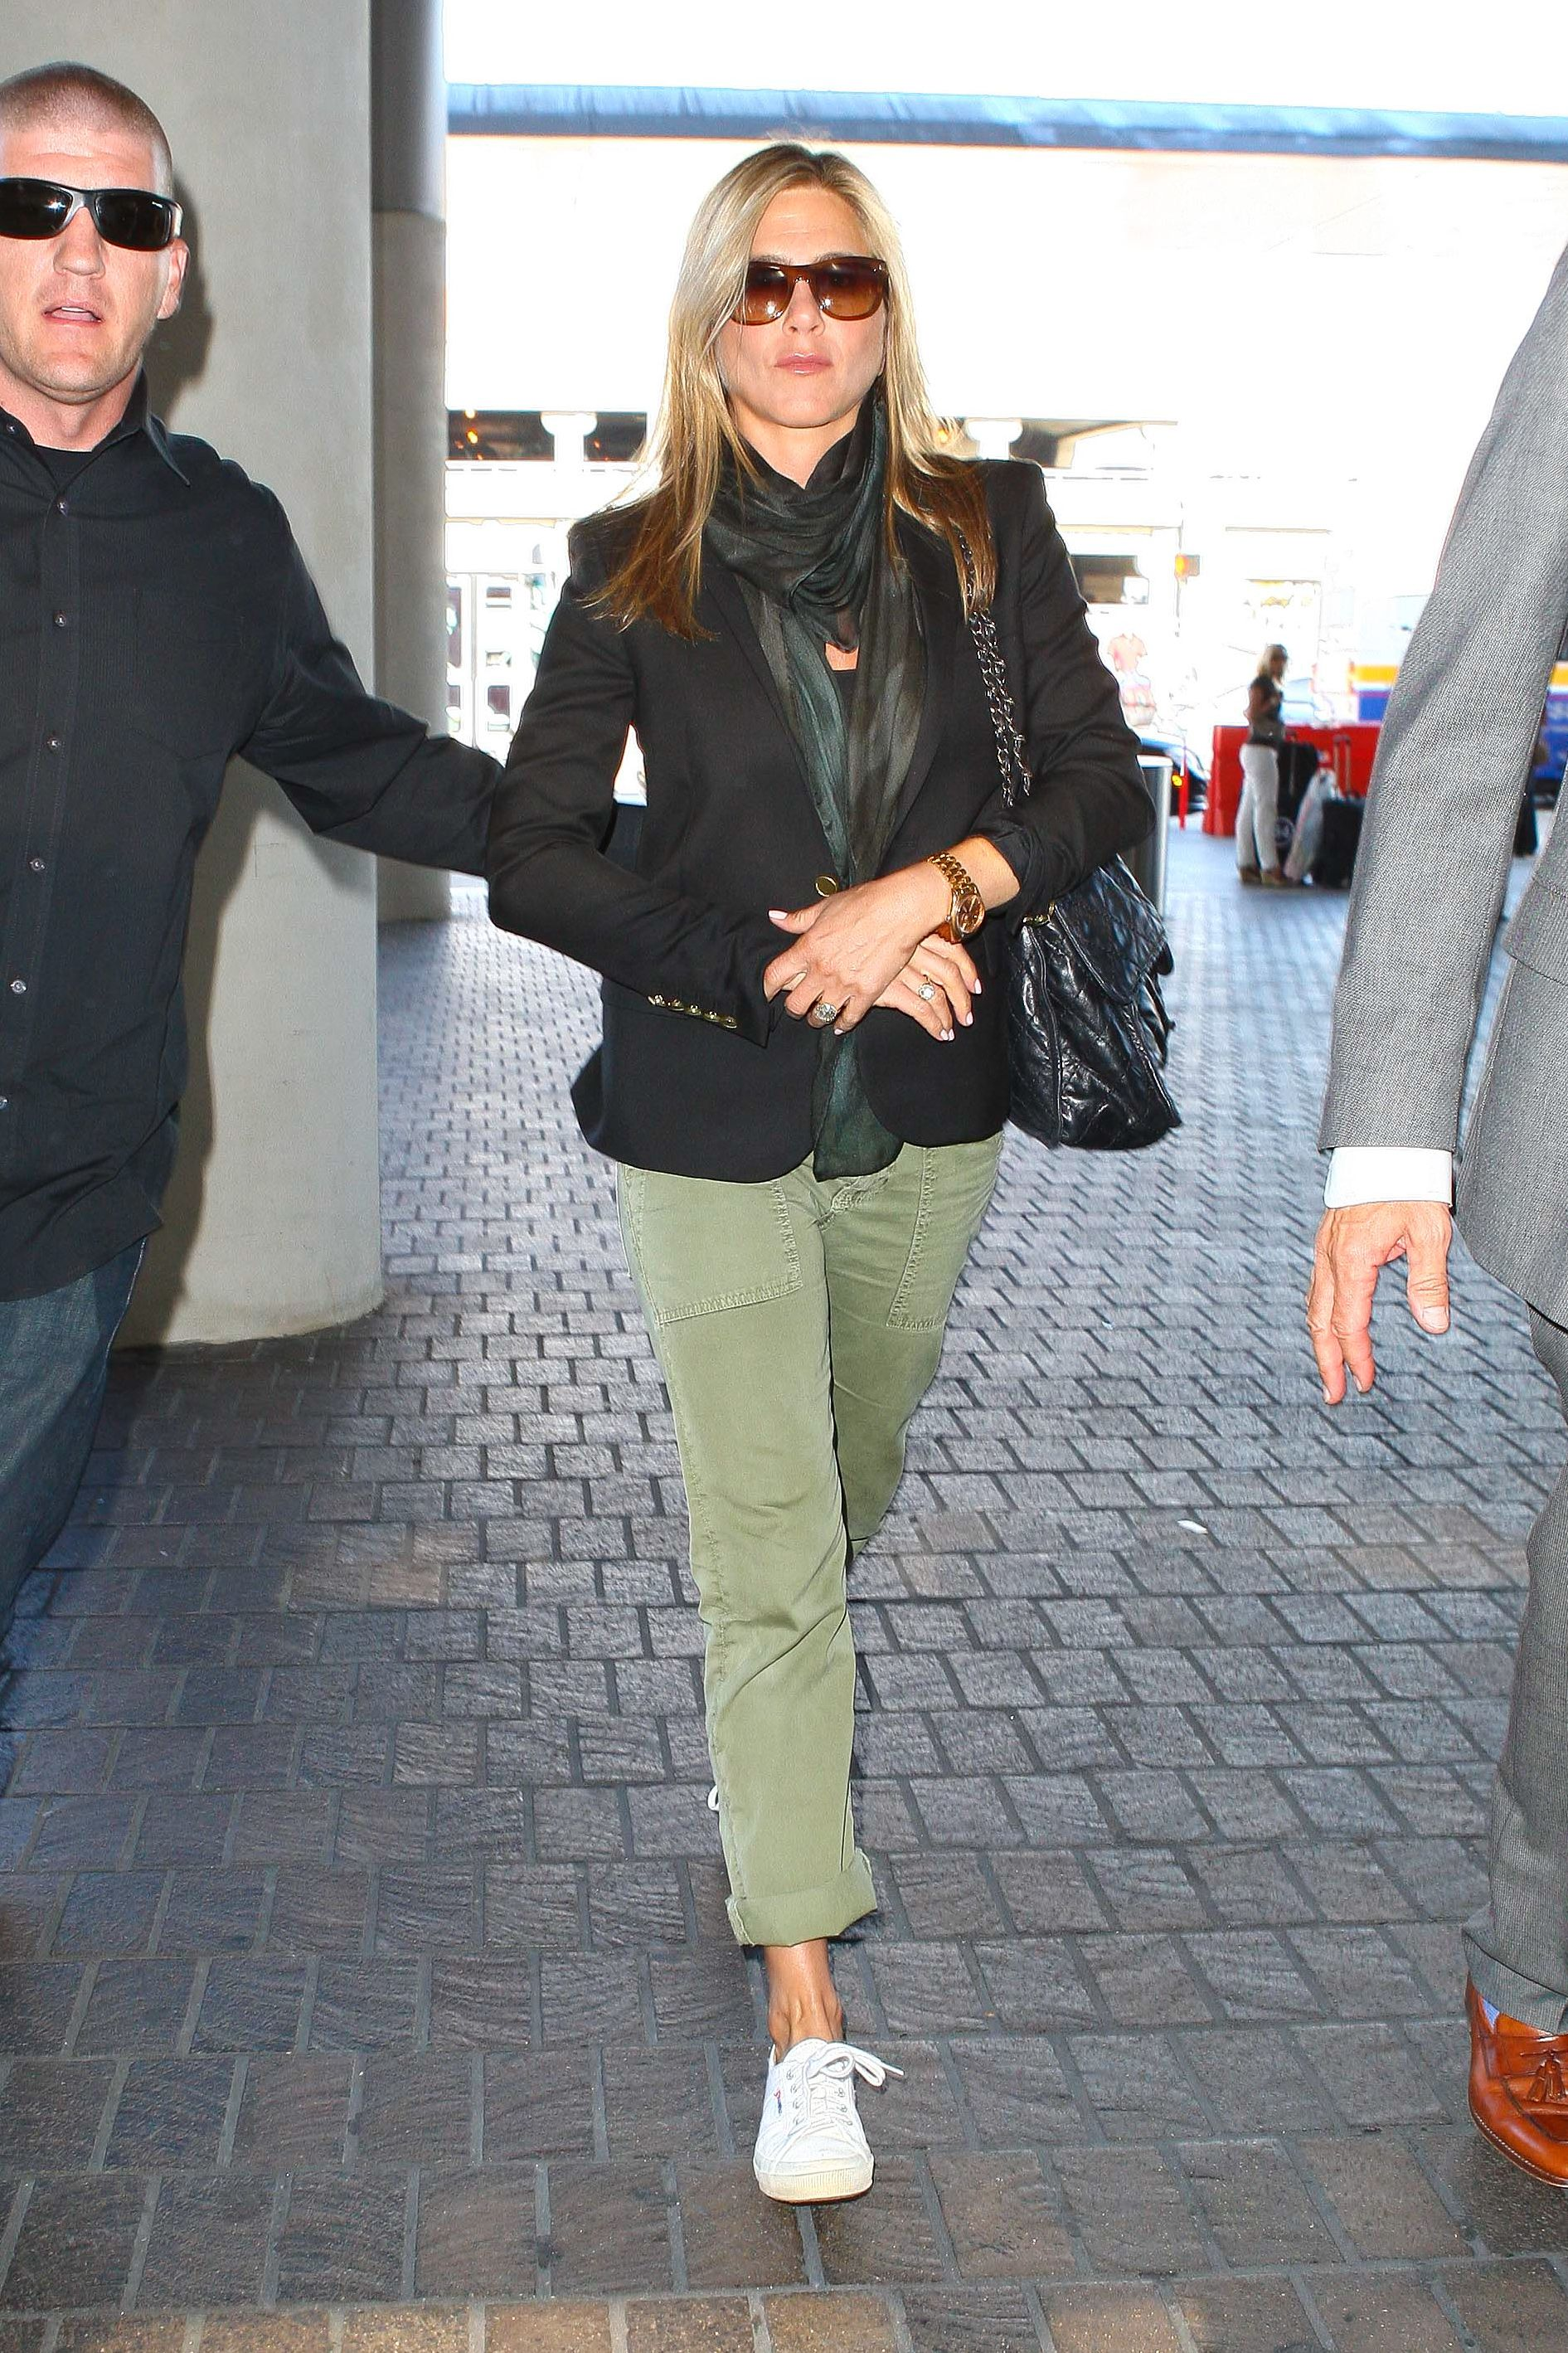 Afbeeldingsresultaat Voor Jennifer Aniston Style Style Pinterest Jennifer Aniston Street